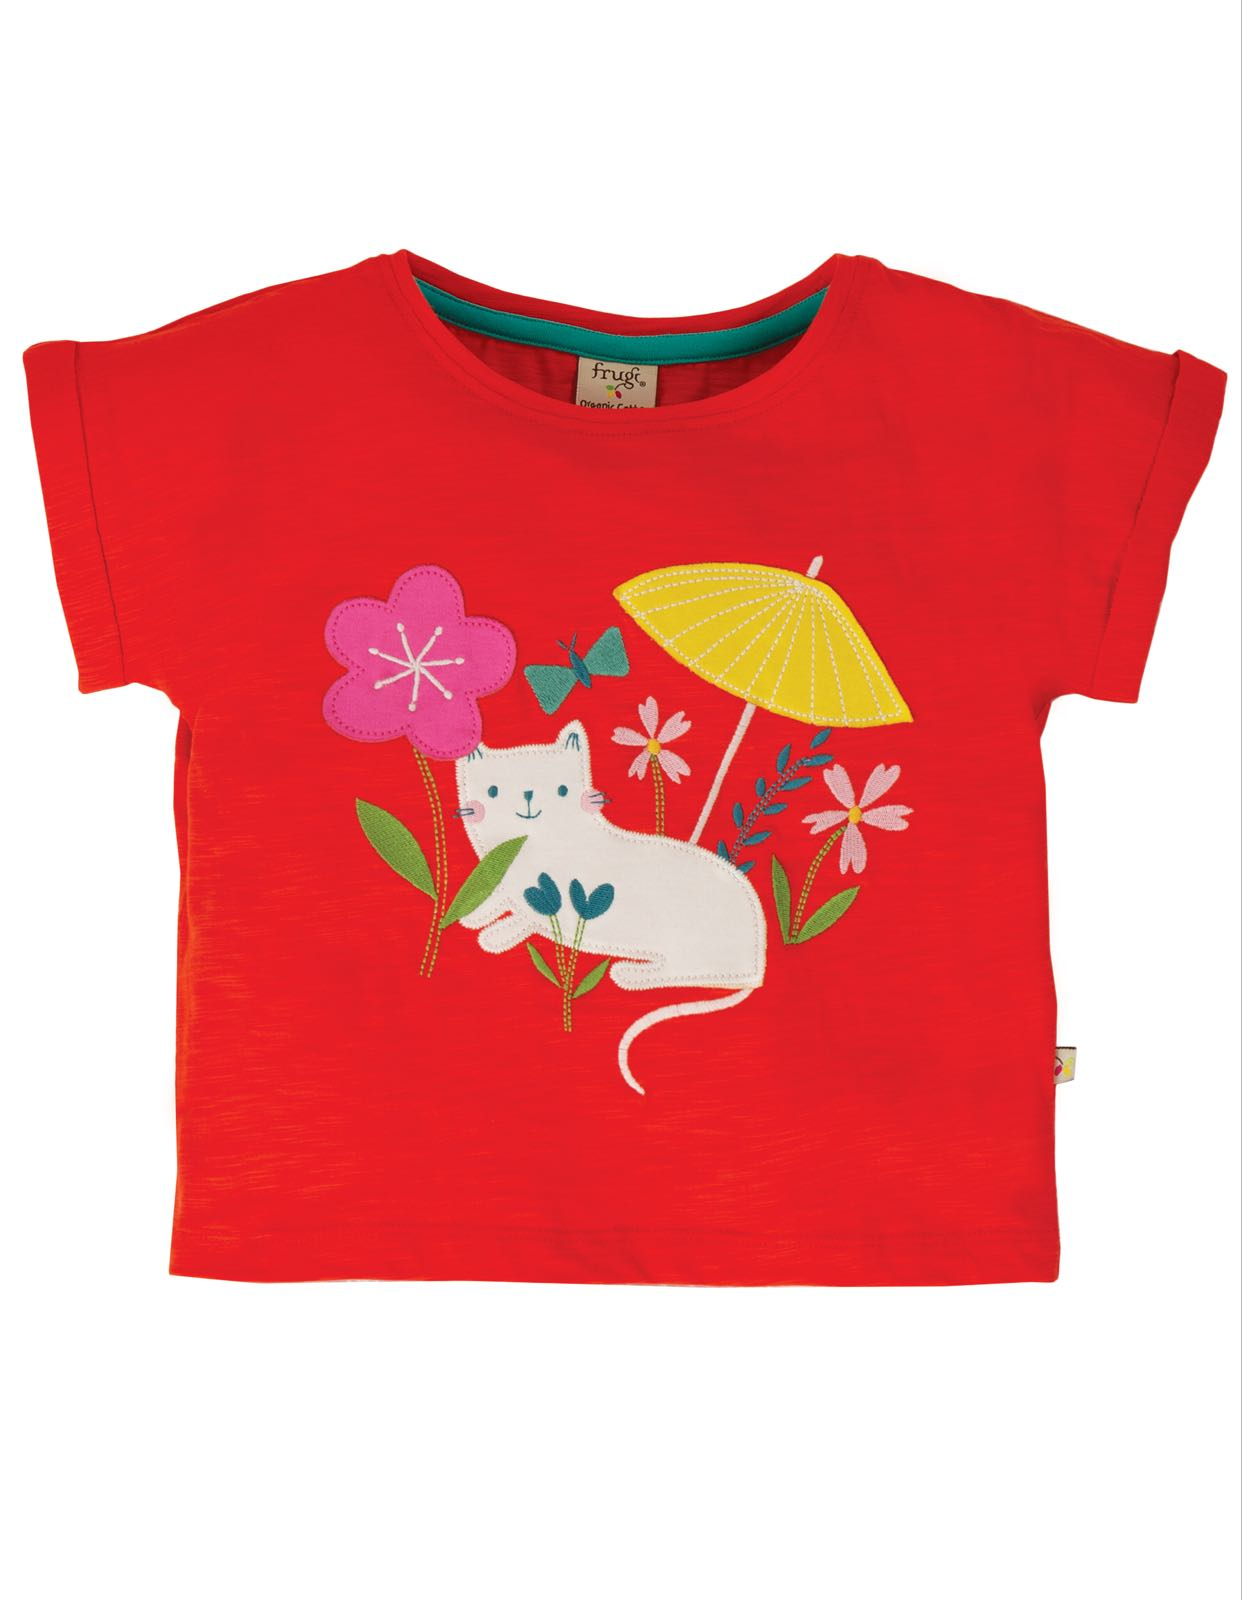 Frugi Sophia Slub T-shirt, Koi Red/Cat